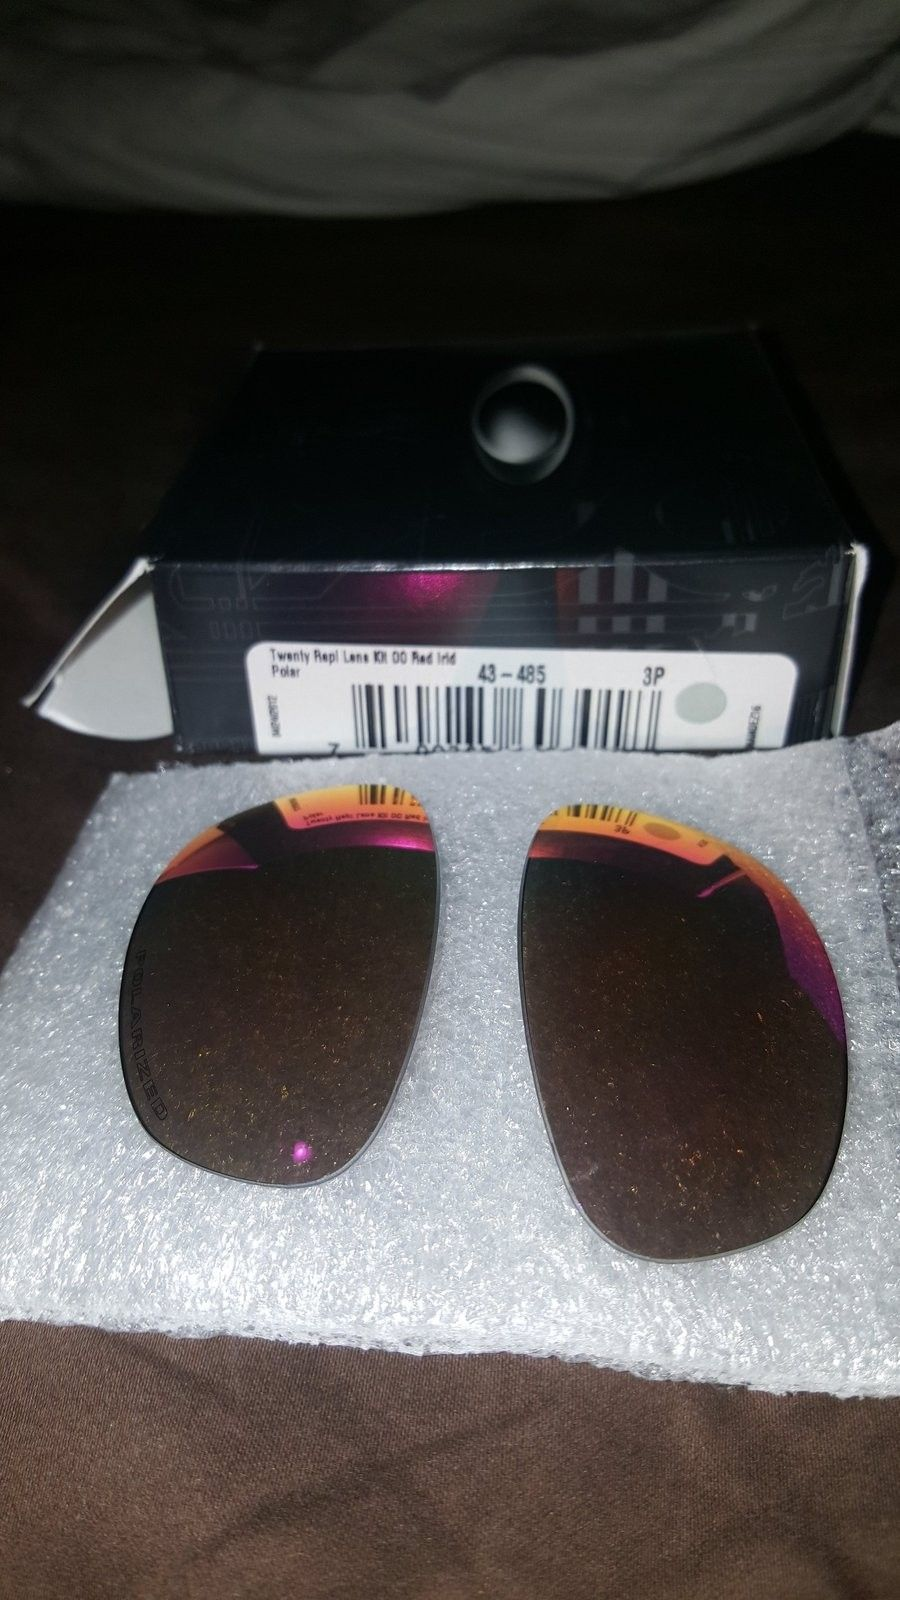 Twenty 00 red iridium polarized. OEM BNIB never mounted 43-485 - 1452236606023852911036.jpg